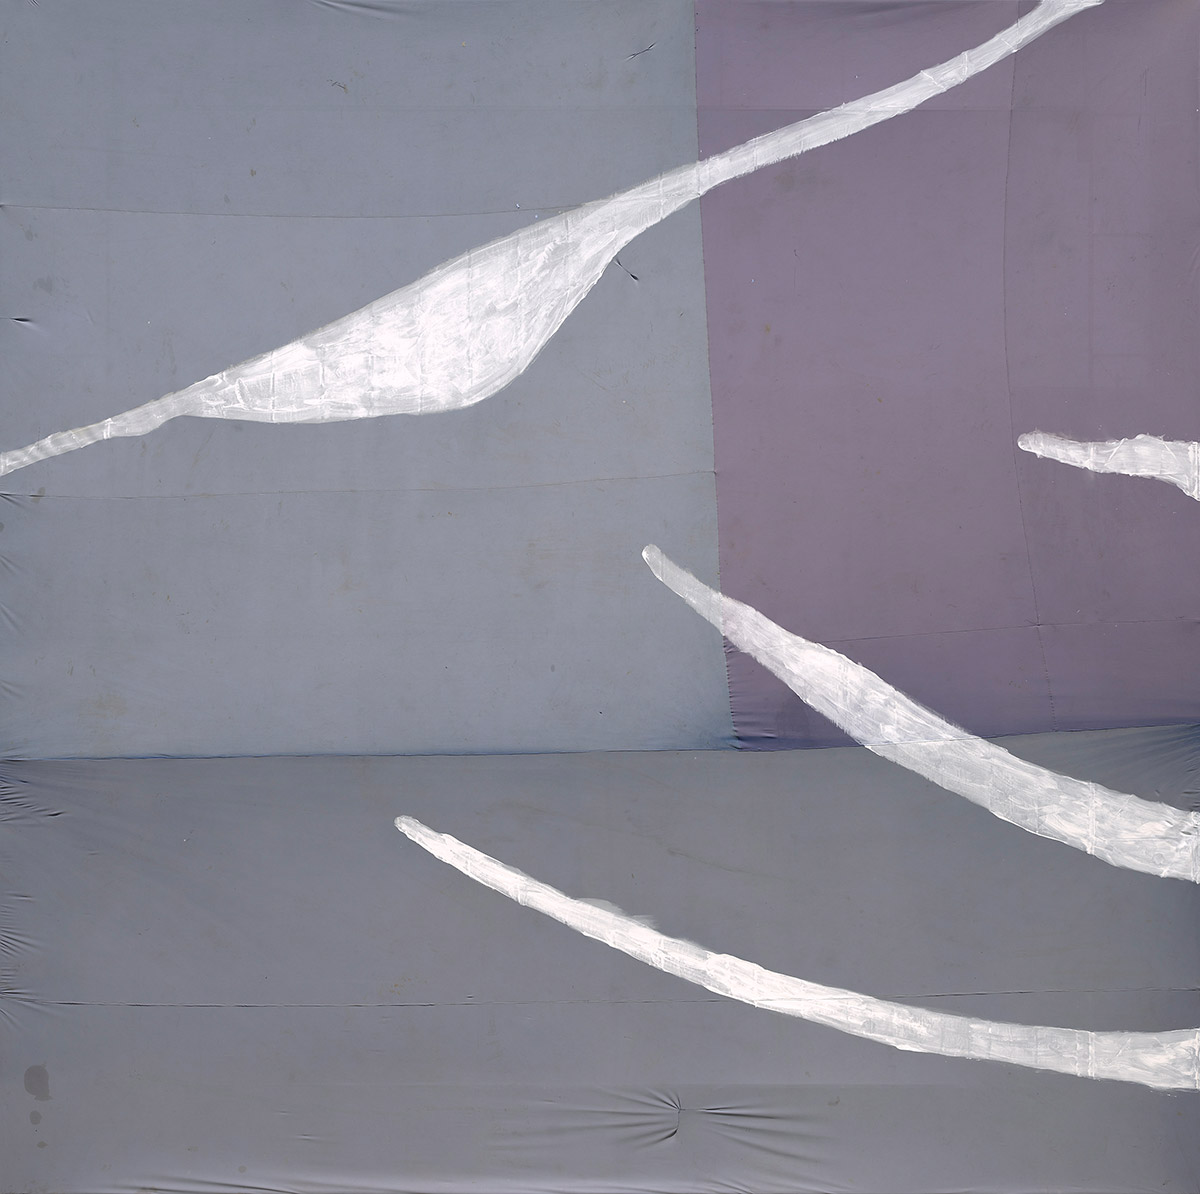 Untitled, 2017, by Julian Schnabel, gesso on found fabric